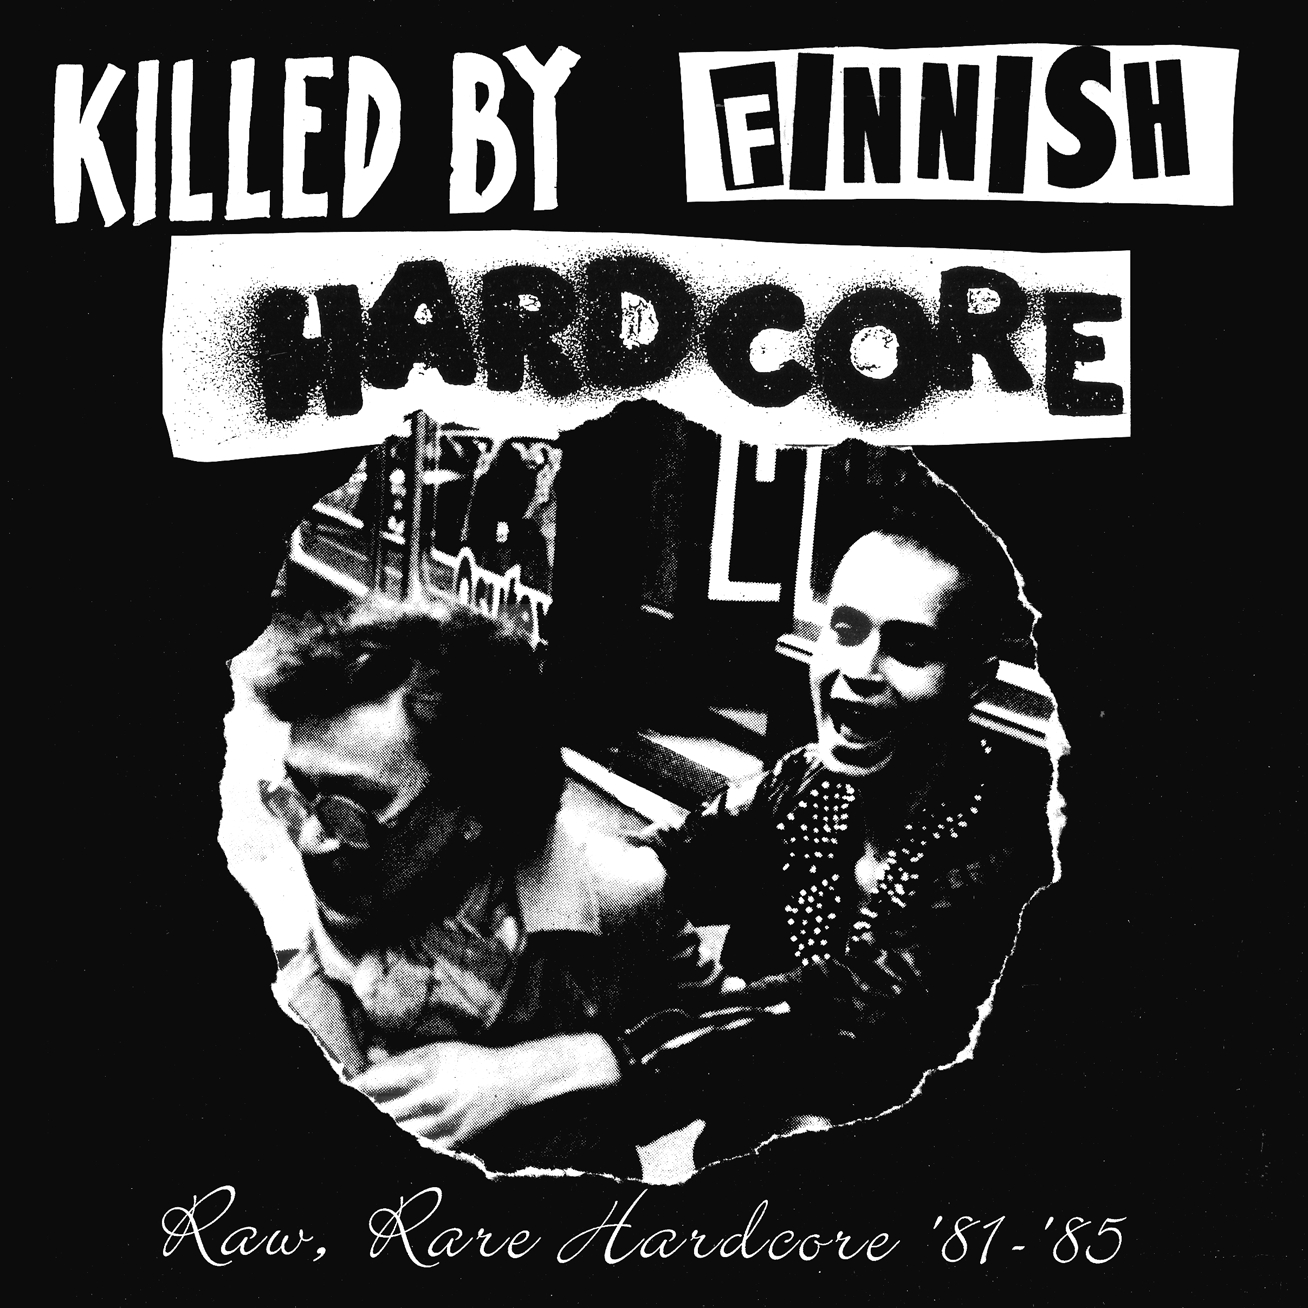 V/A – Killed By Finnish Hardcore 2003 | ✅ Download punk music